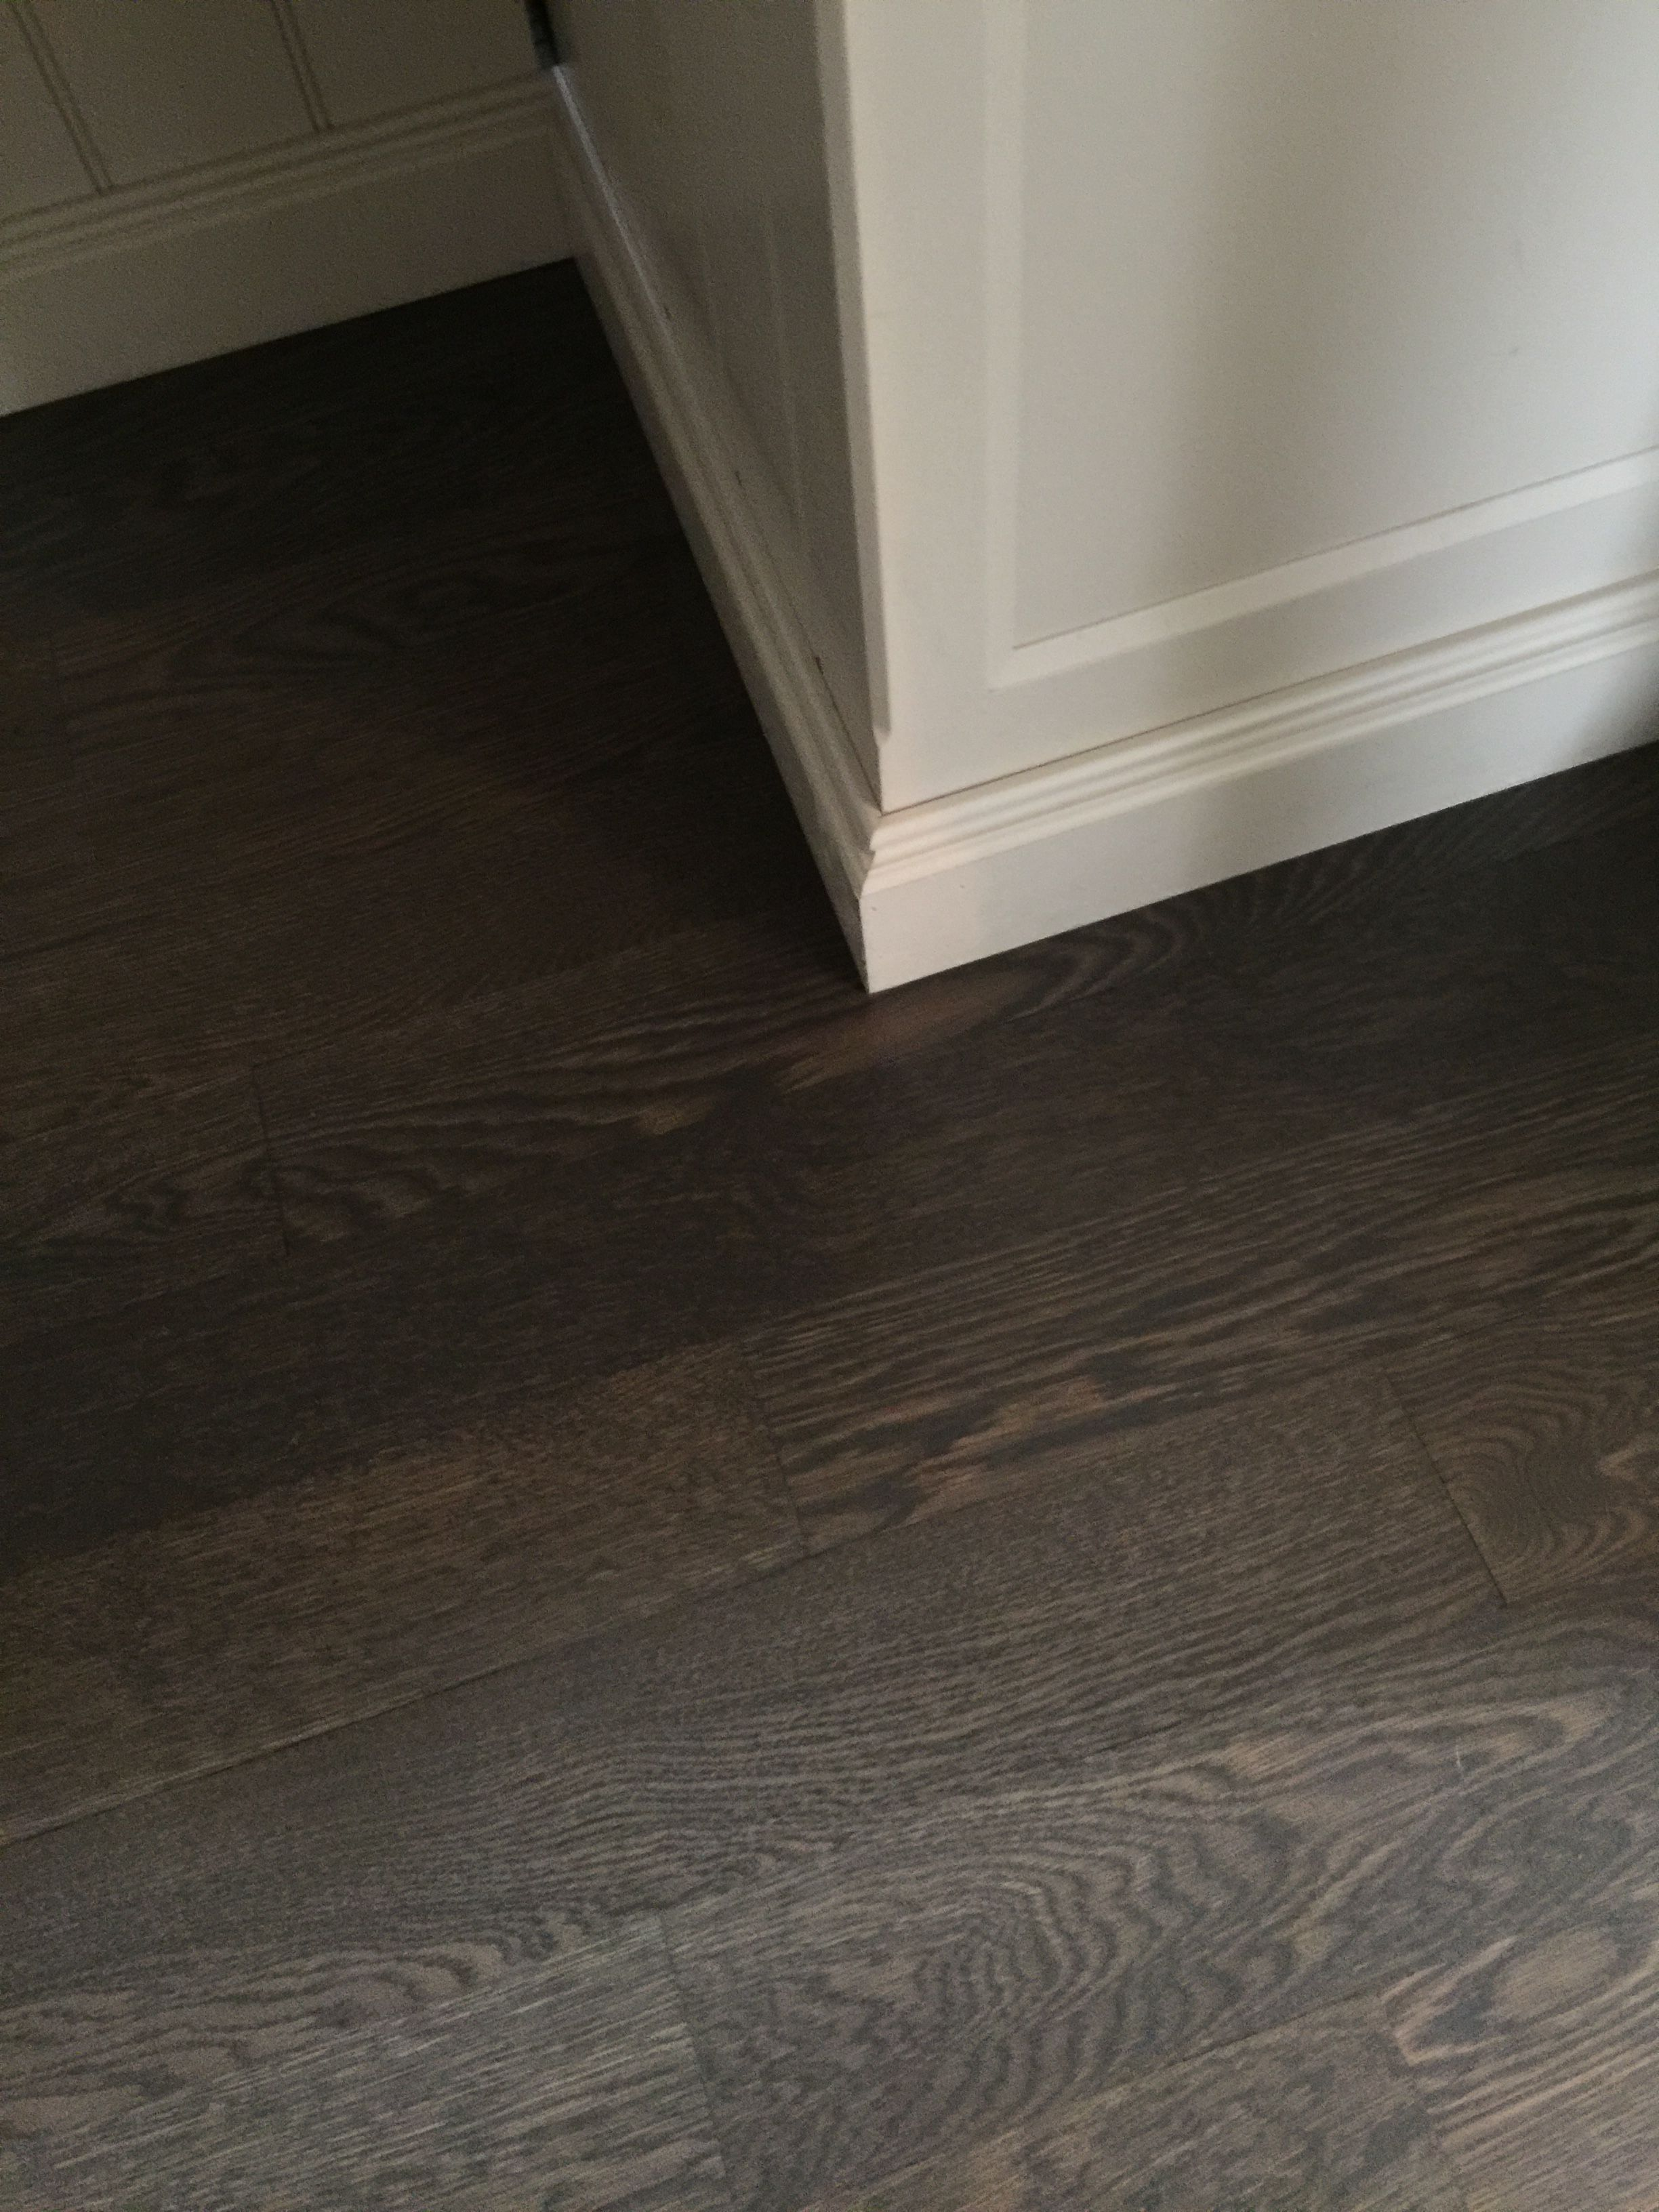 how to keep footprints off dark hardwood floors